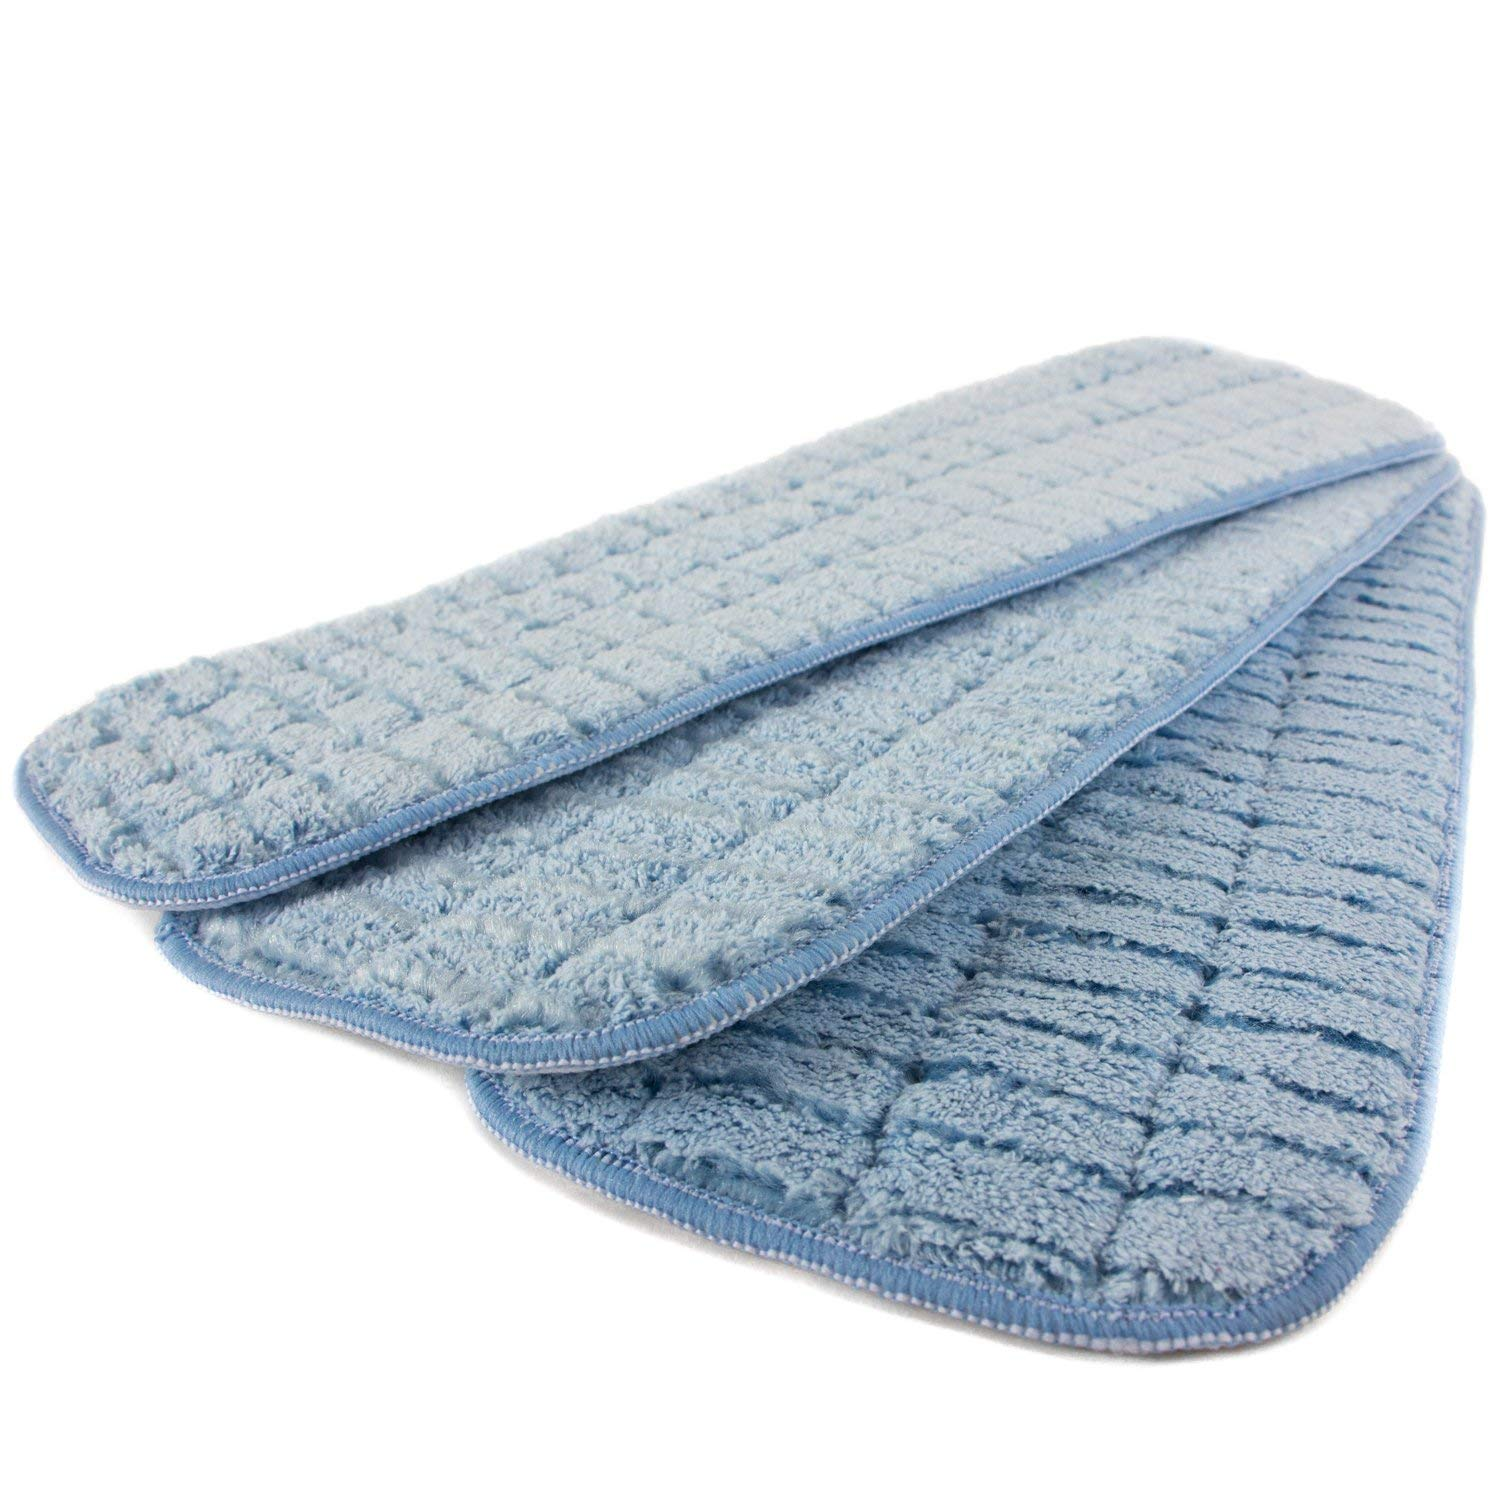 "Zwipes Commercial 18"" Microfiber Wet Mop Scrubbing Pad Blue - 3 CT3.0 CT"